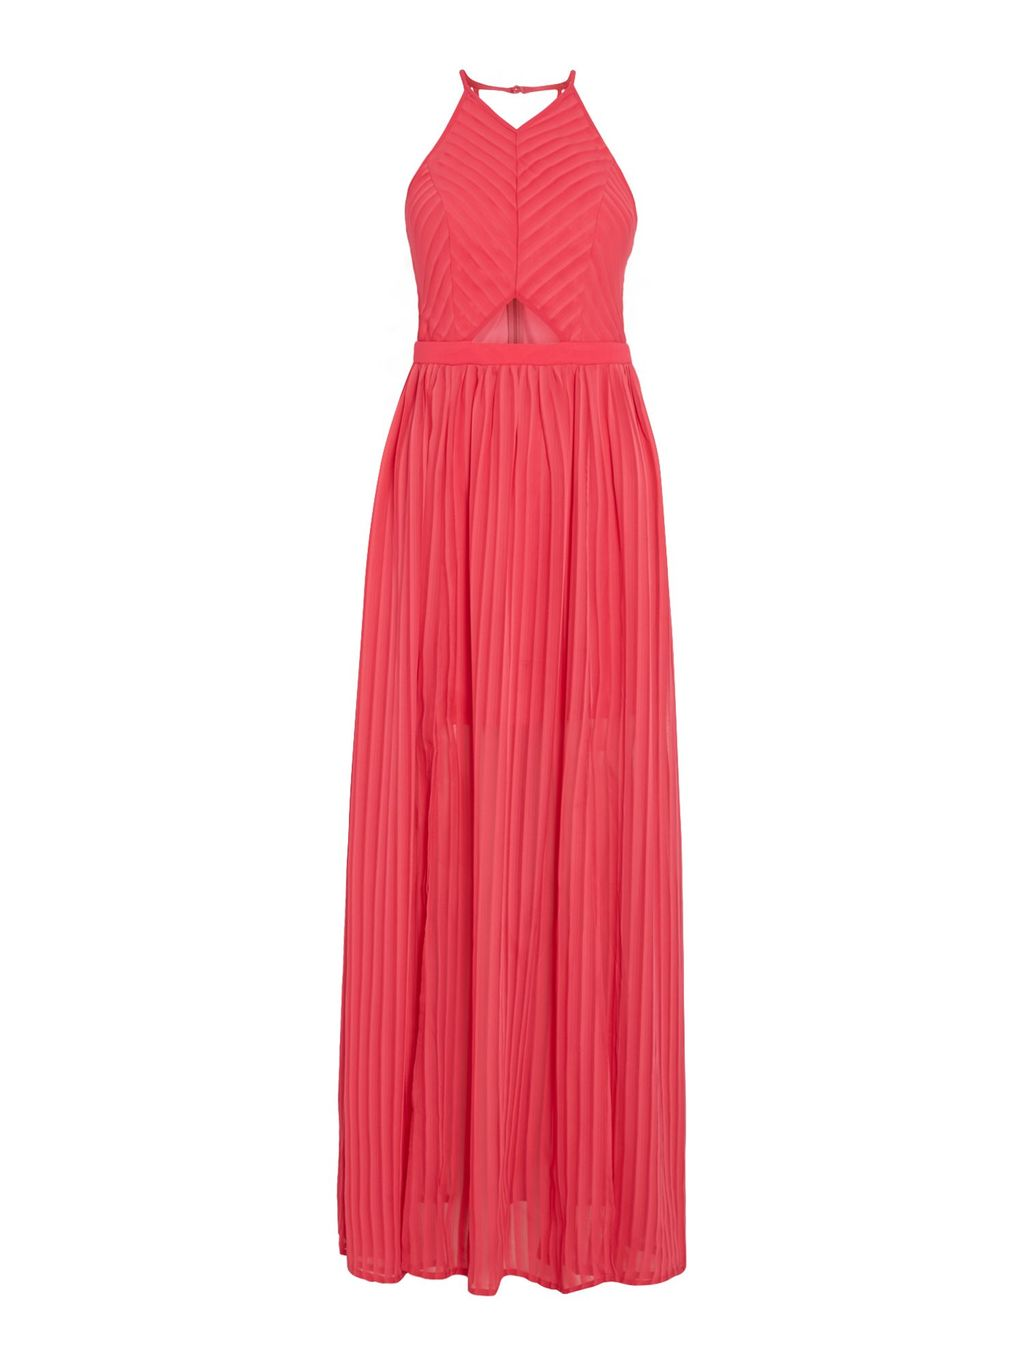 Sleeveless Cutout Maxi Dress, Pink - neckline: v-neck; pattern: plain; sleeve style: sleeveless; style: maxi dress; predominant colour: pink; occasions: evening; length: floor length; fit: body skimming; fibres: polyester/polyamide - 100%; waist detail: cut out detail; sleeve length: sleeveless; pattern type: fabric; texture group: other - light to midweight; season: s/s 2016; wardrobe: event